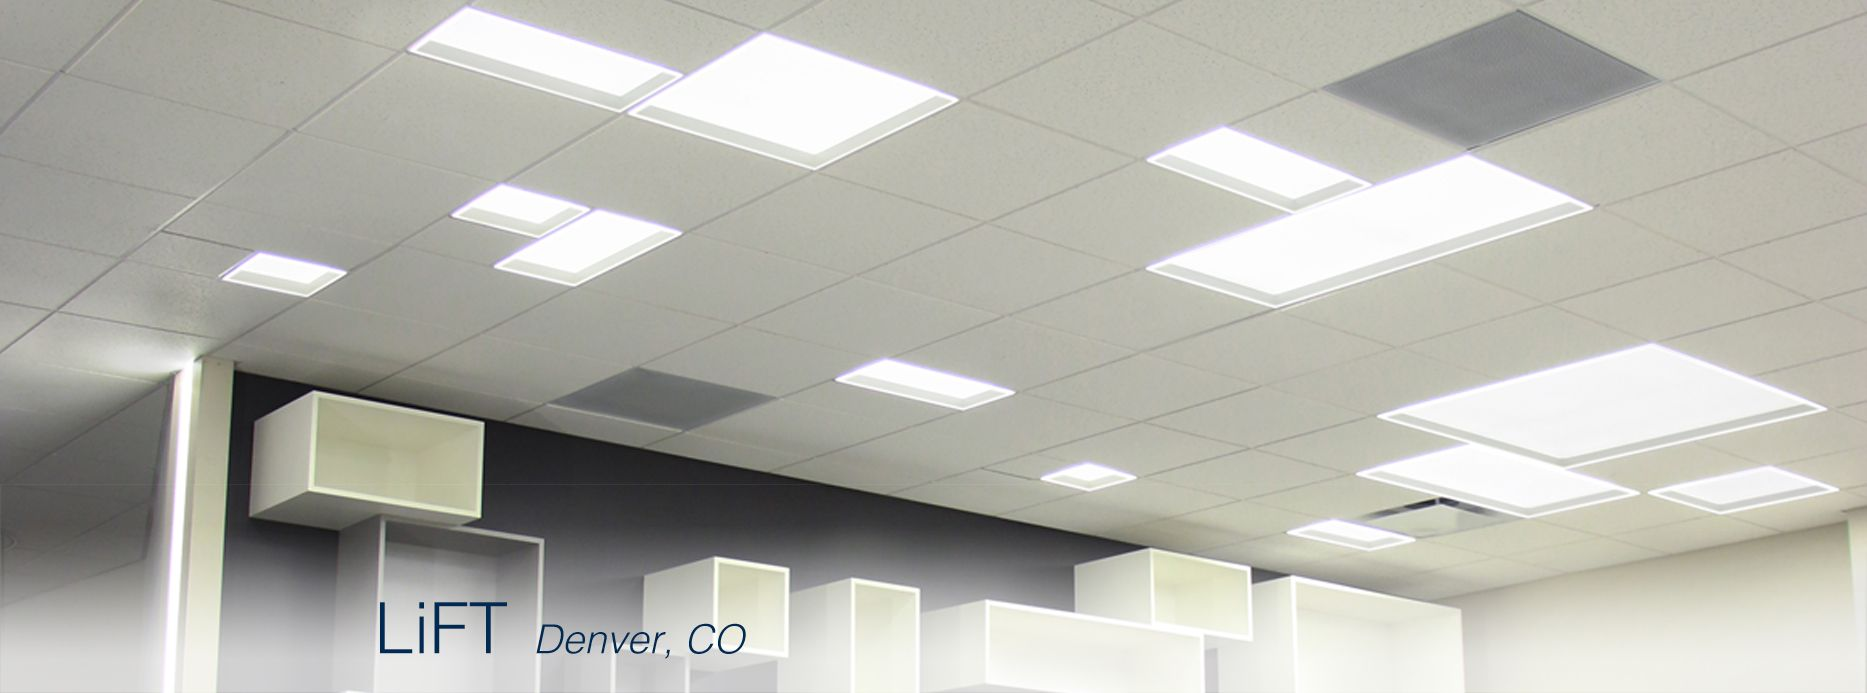 pinnacle architectural lighting commercial lighting recessed